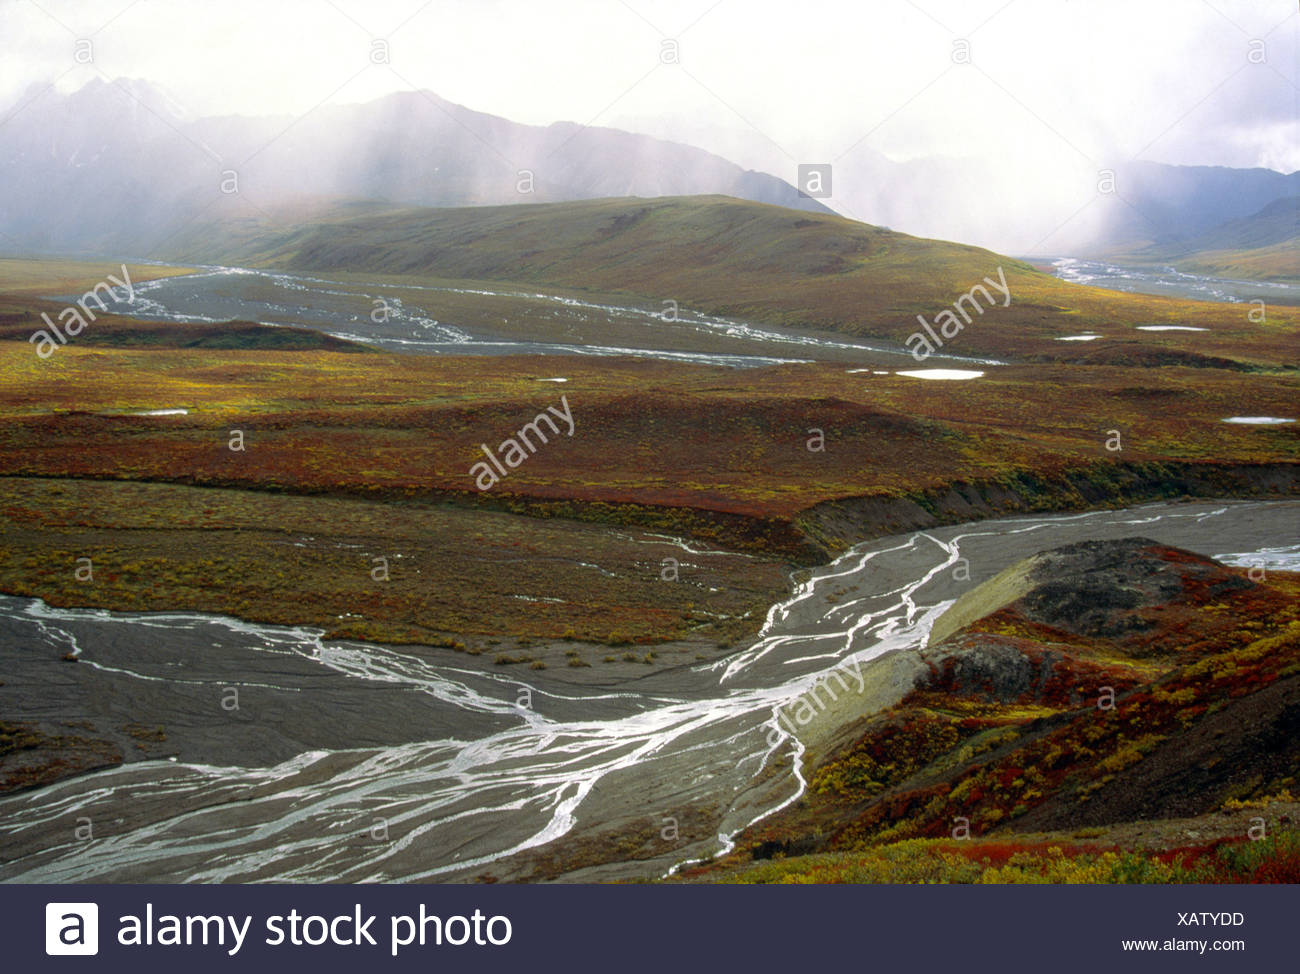 Alaska. Denali NP. Polychrome Pass. Braided Toklat River. - Stock Image